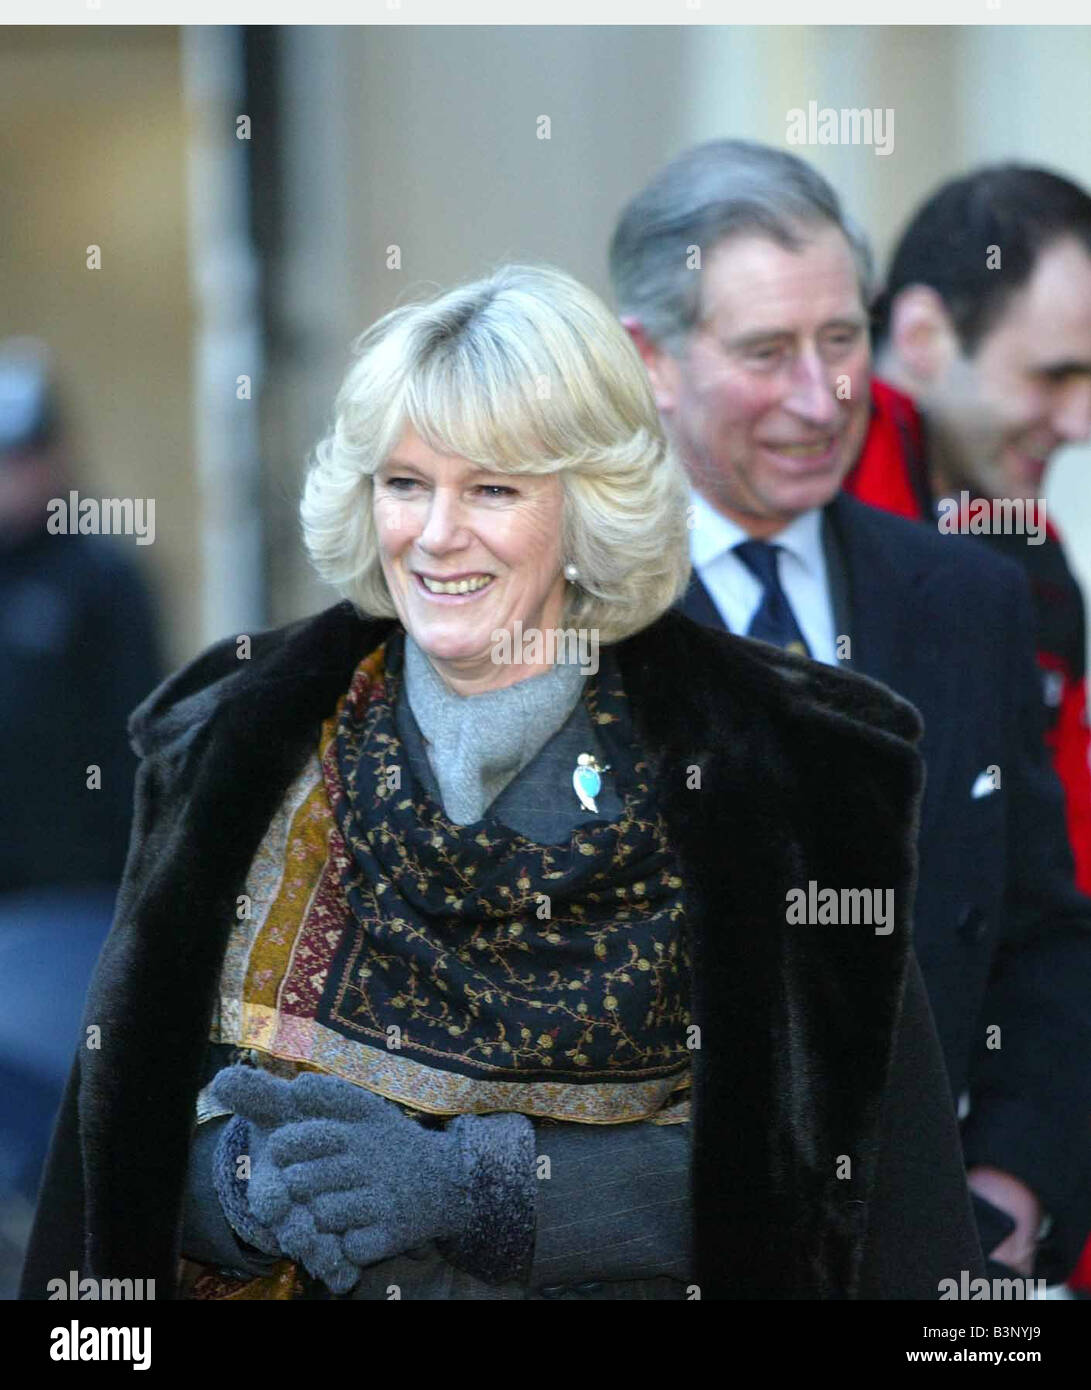 charles and camilla meet explorers tom avery george wells and andrew gerber at clarence house february: american colonial homes brandon inge